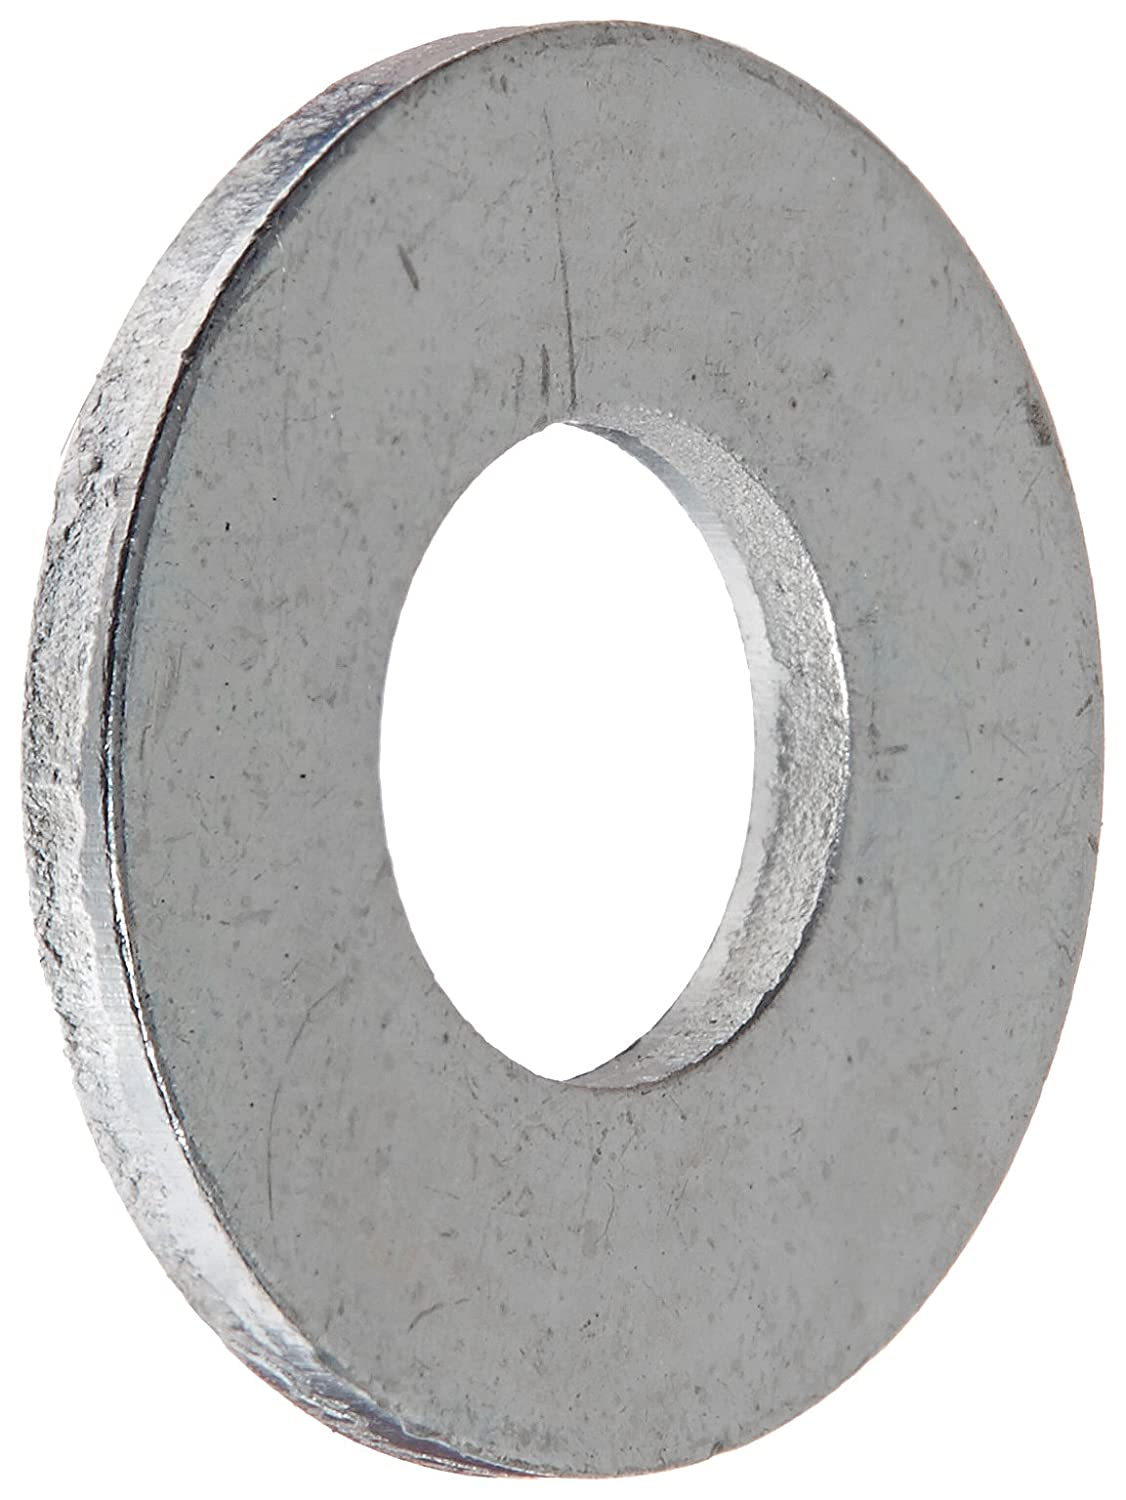 Zinc Plated Finish 0.049 Thick ASME B18.22.1 Pack of 100 No 10 Screw Size 9//16 OD Steel Flat Washer 1//4 ID